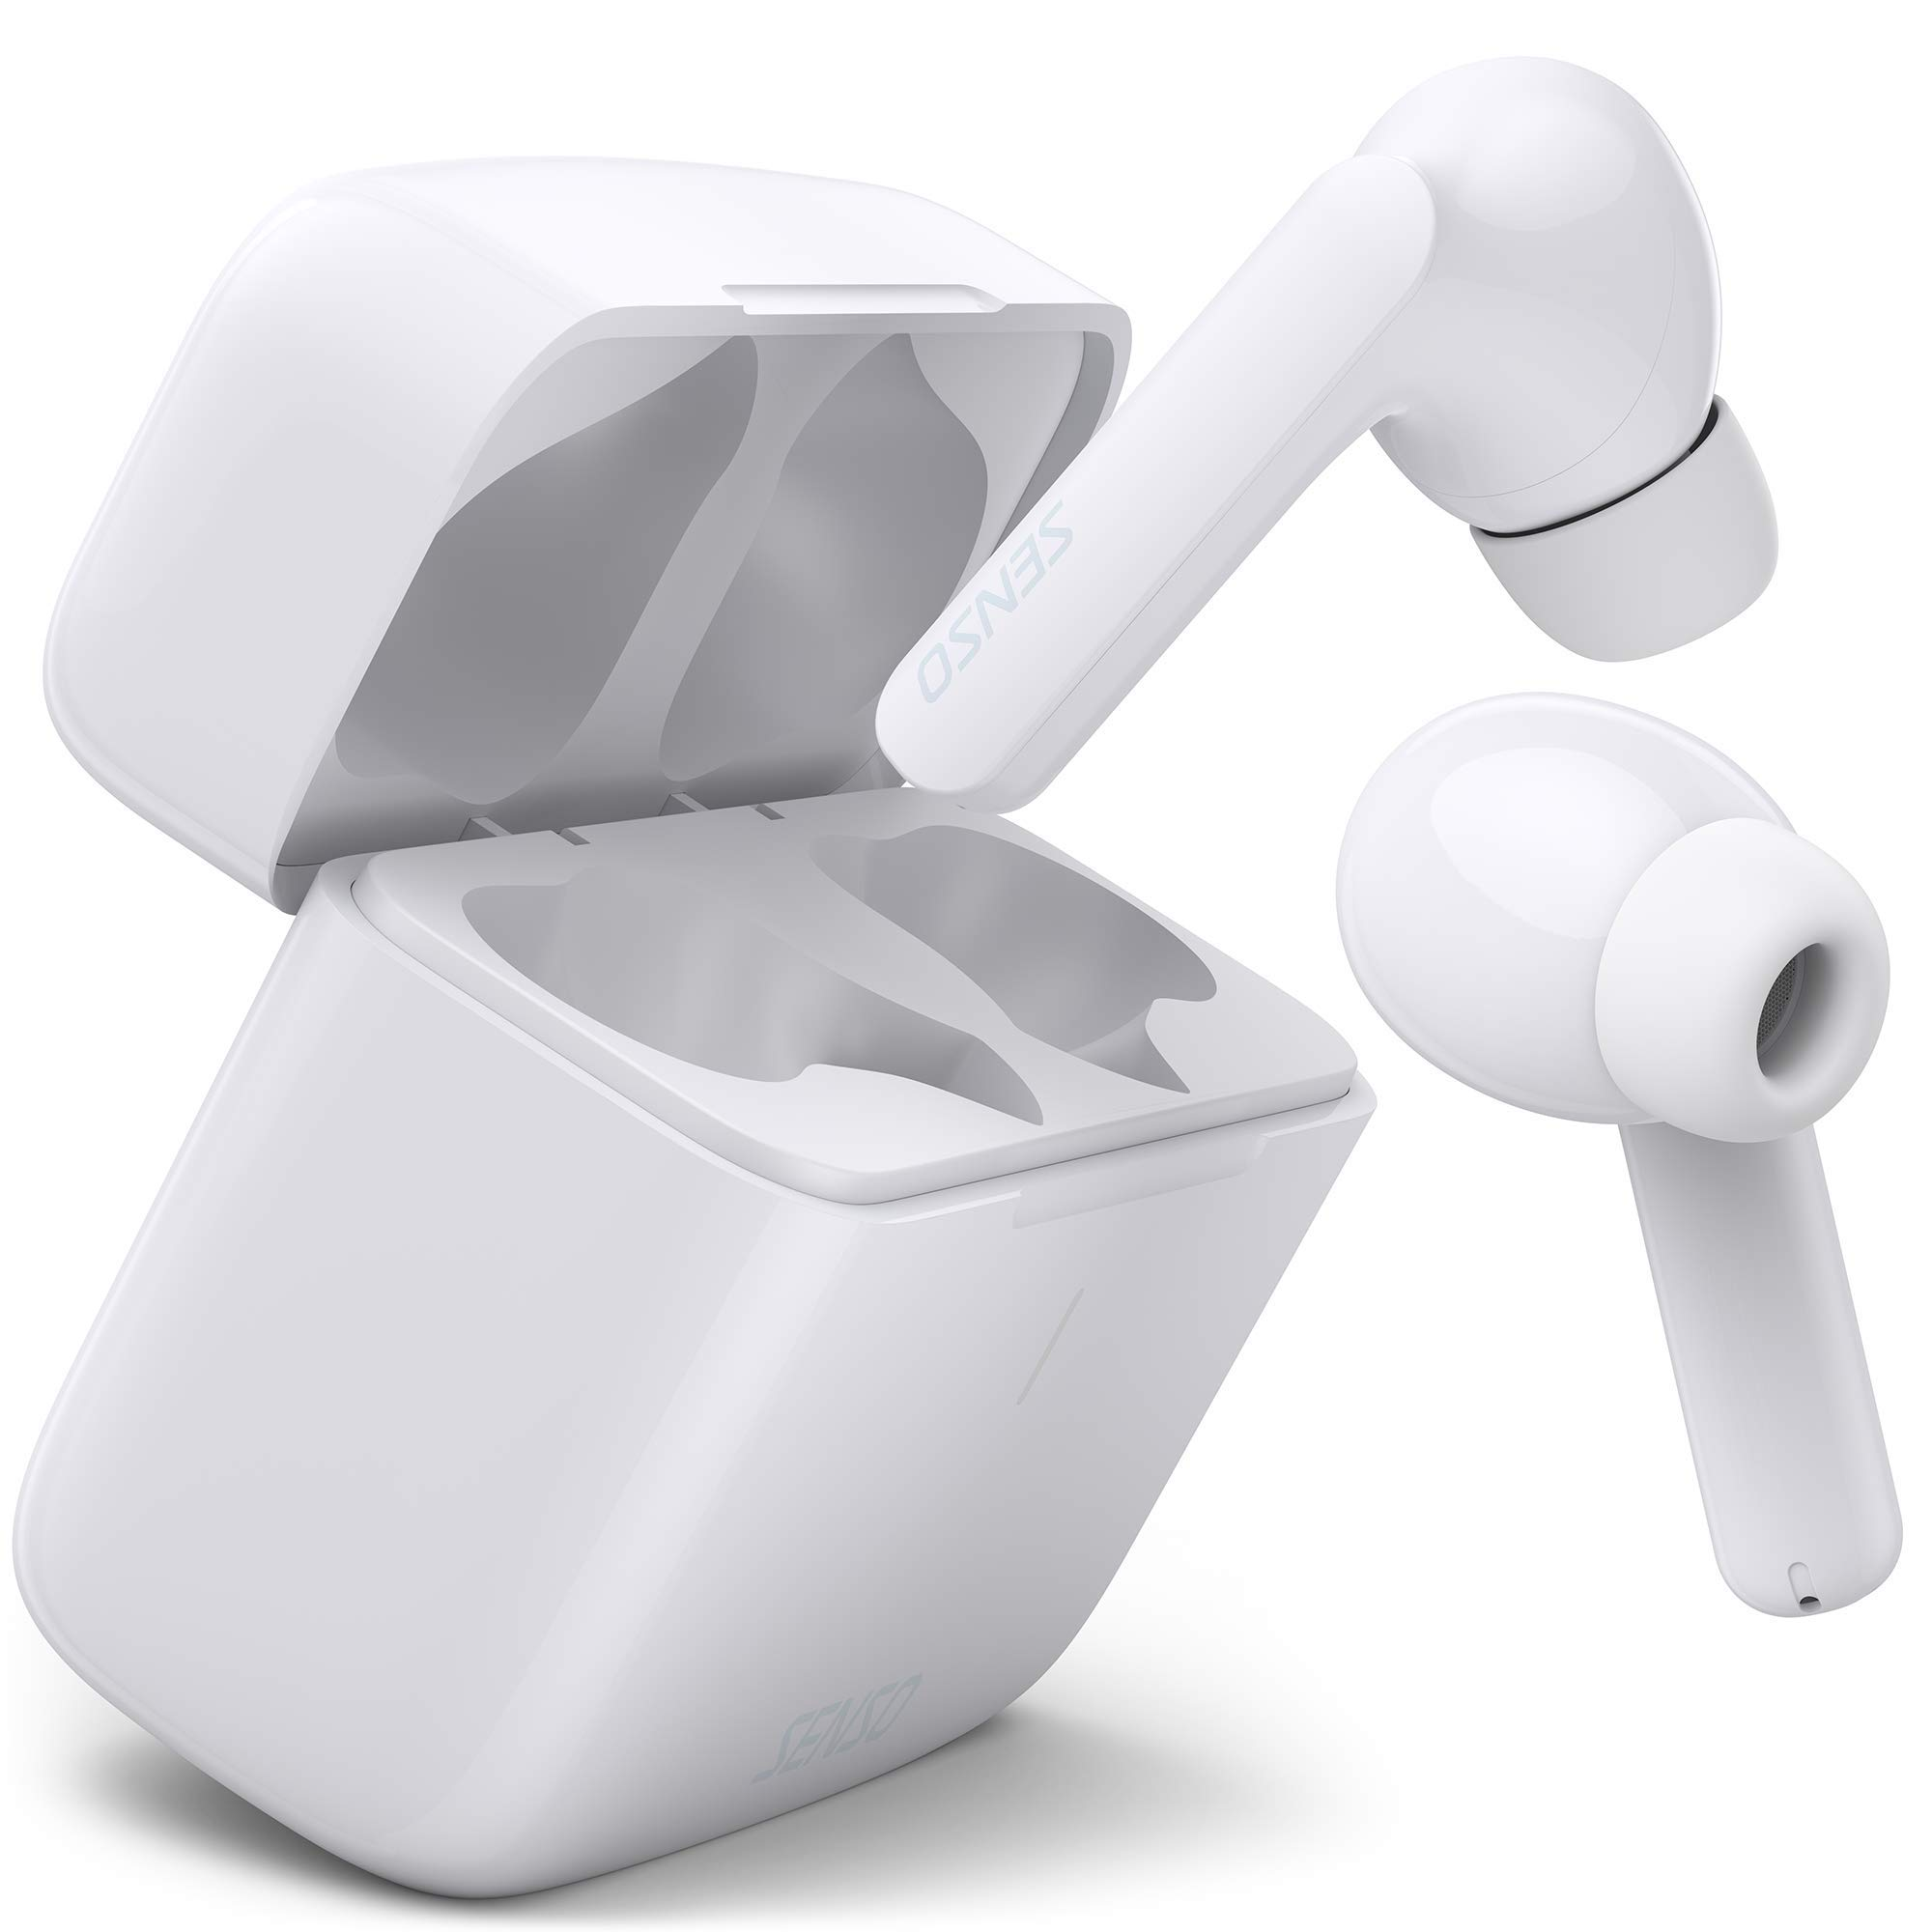 Auriculares Earbuds Inalambricos Senso White